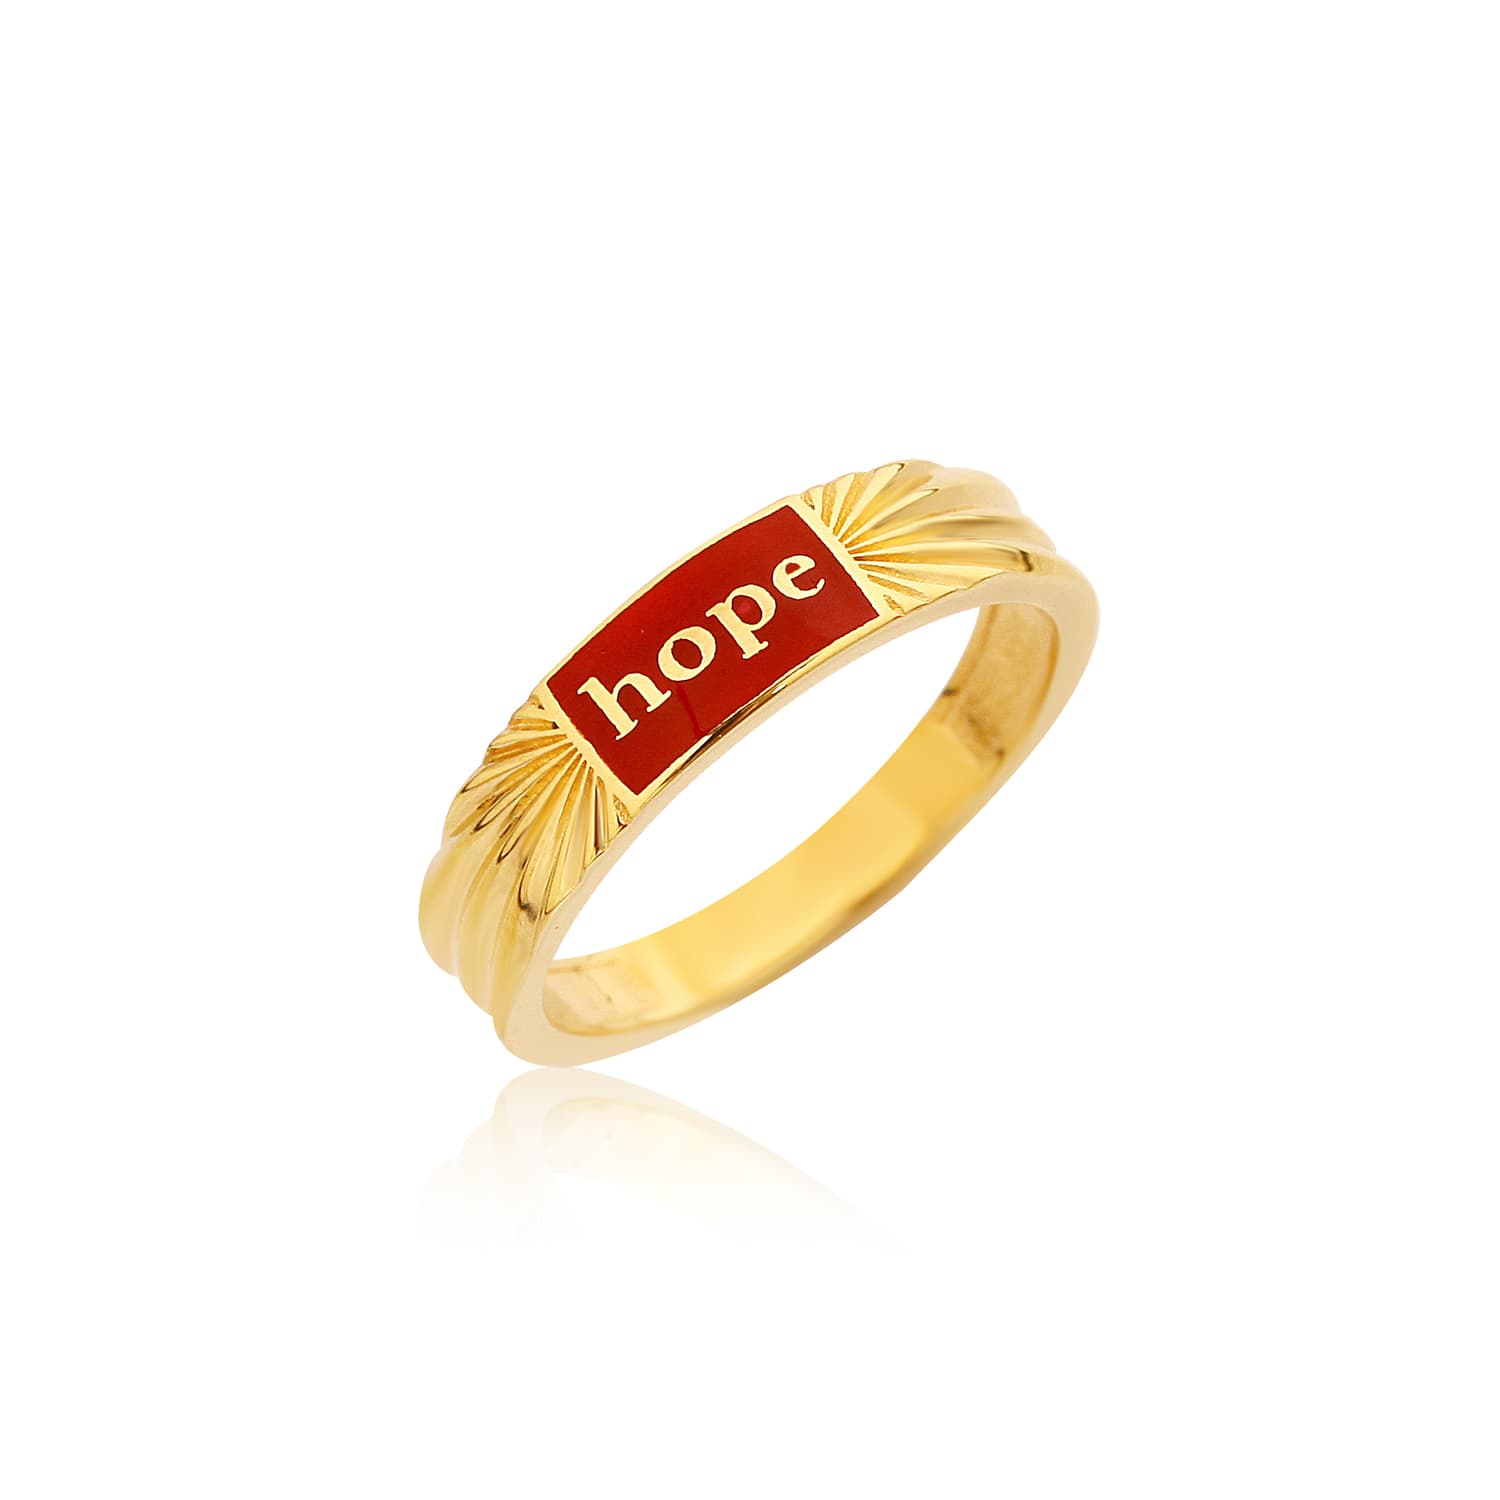 Real gold plated red enamel ring on silver